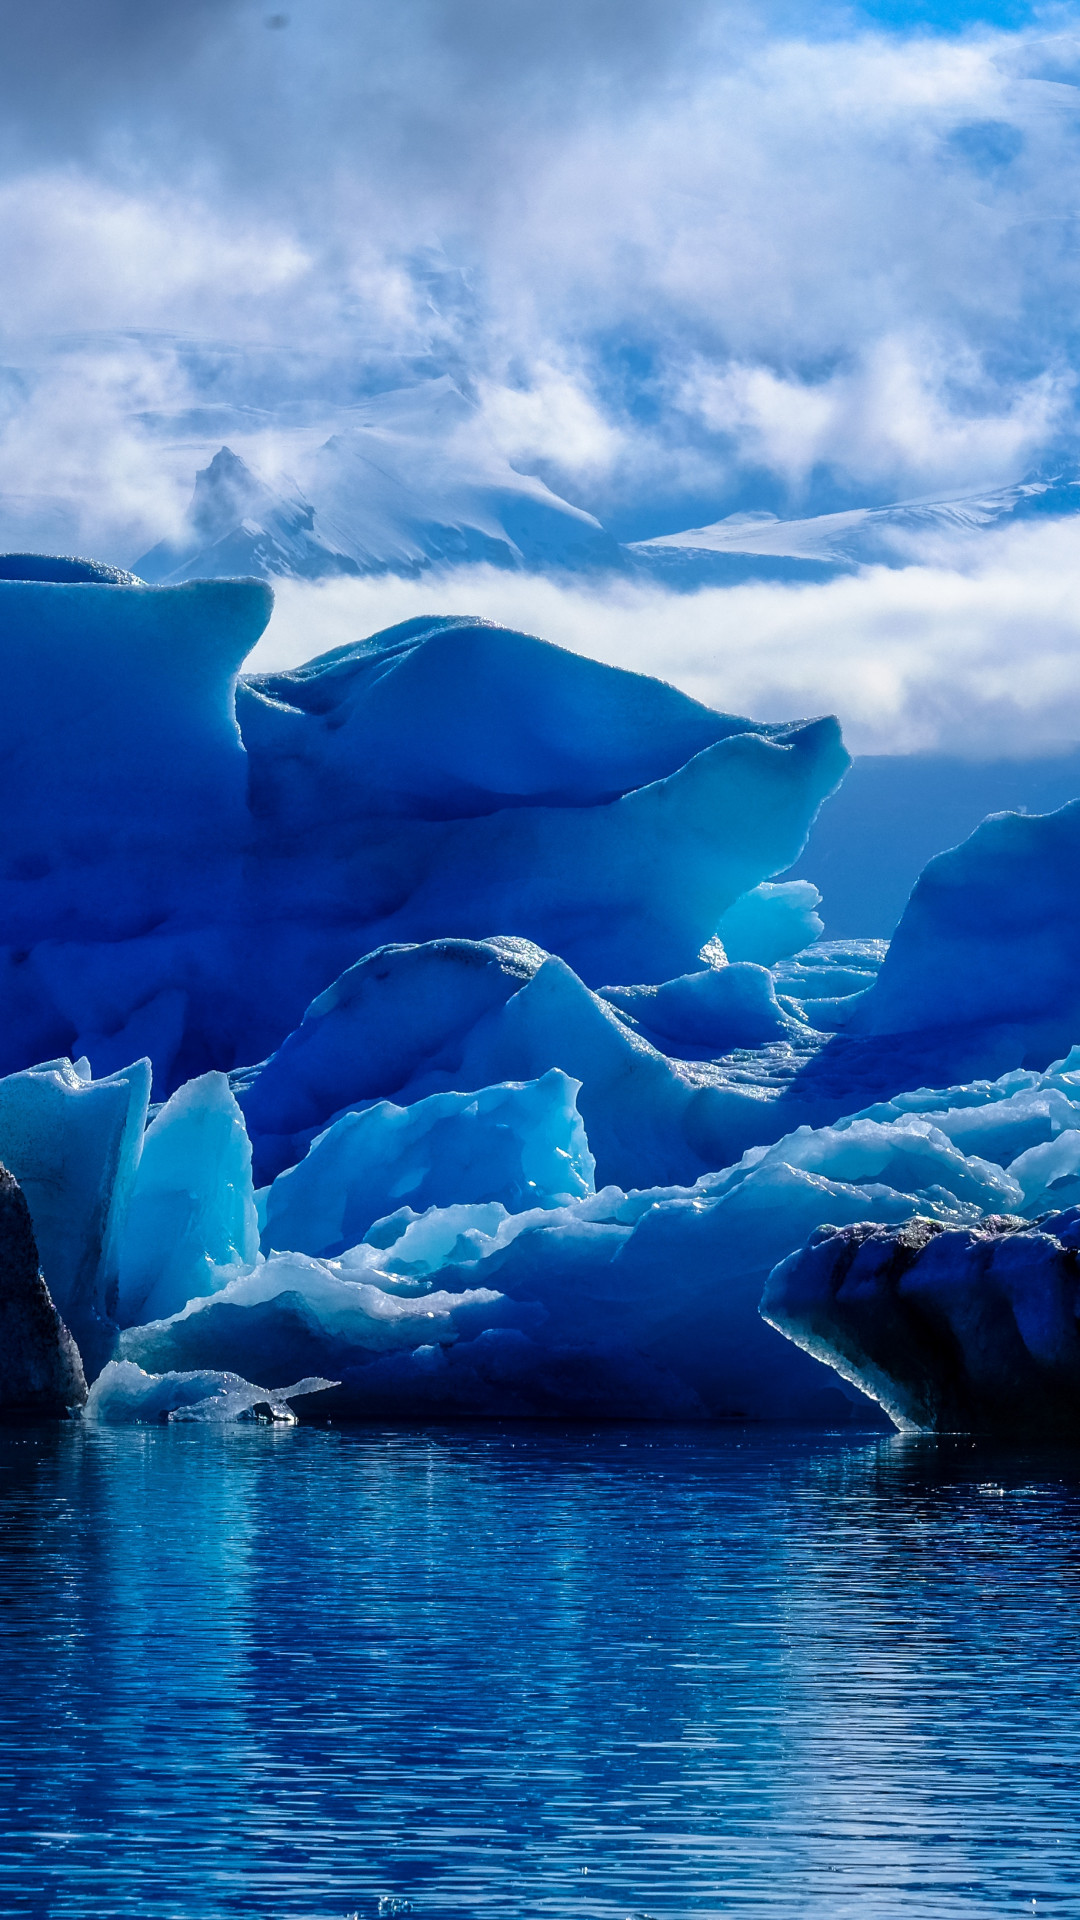 Glacier Wallpapers Hd Wallpaper Collections 4kwallpaper Wiki